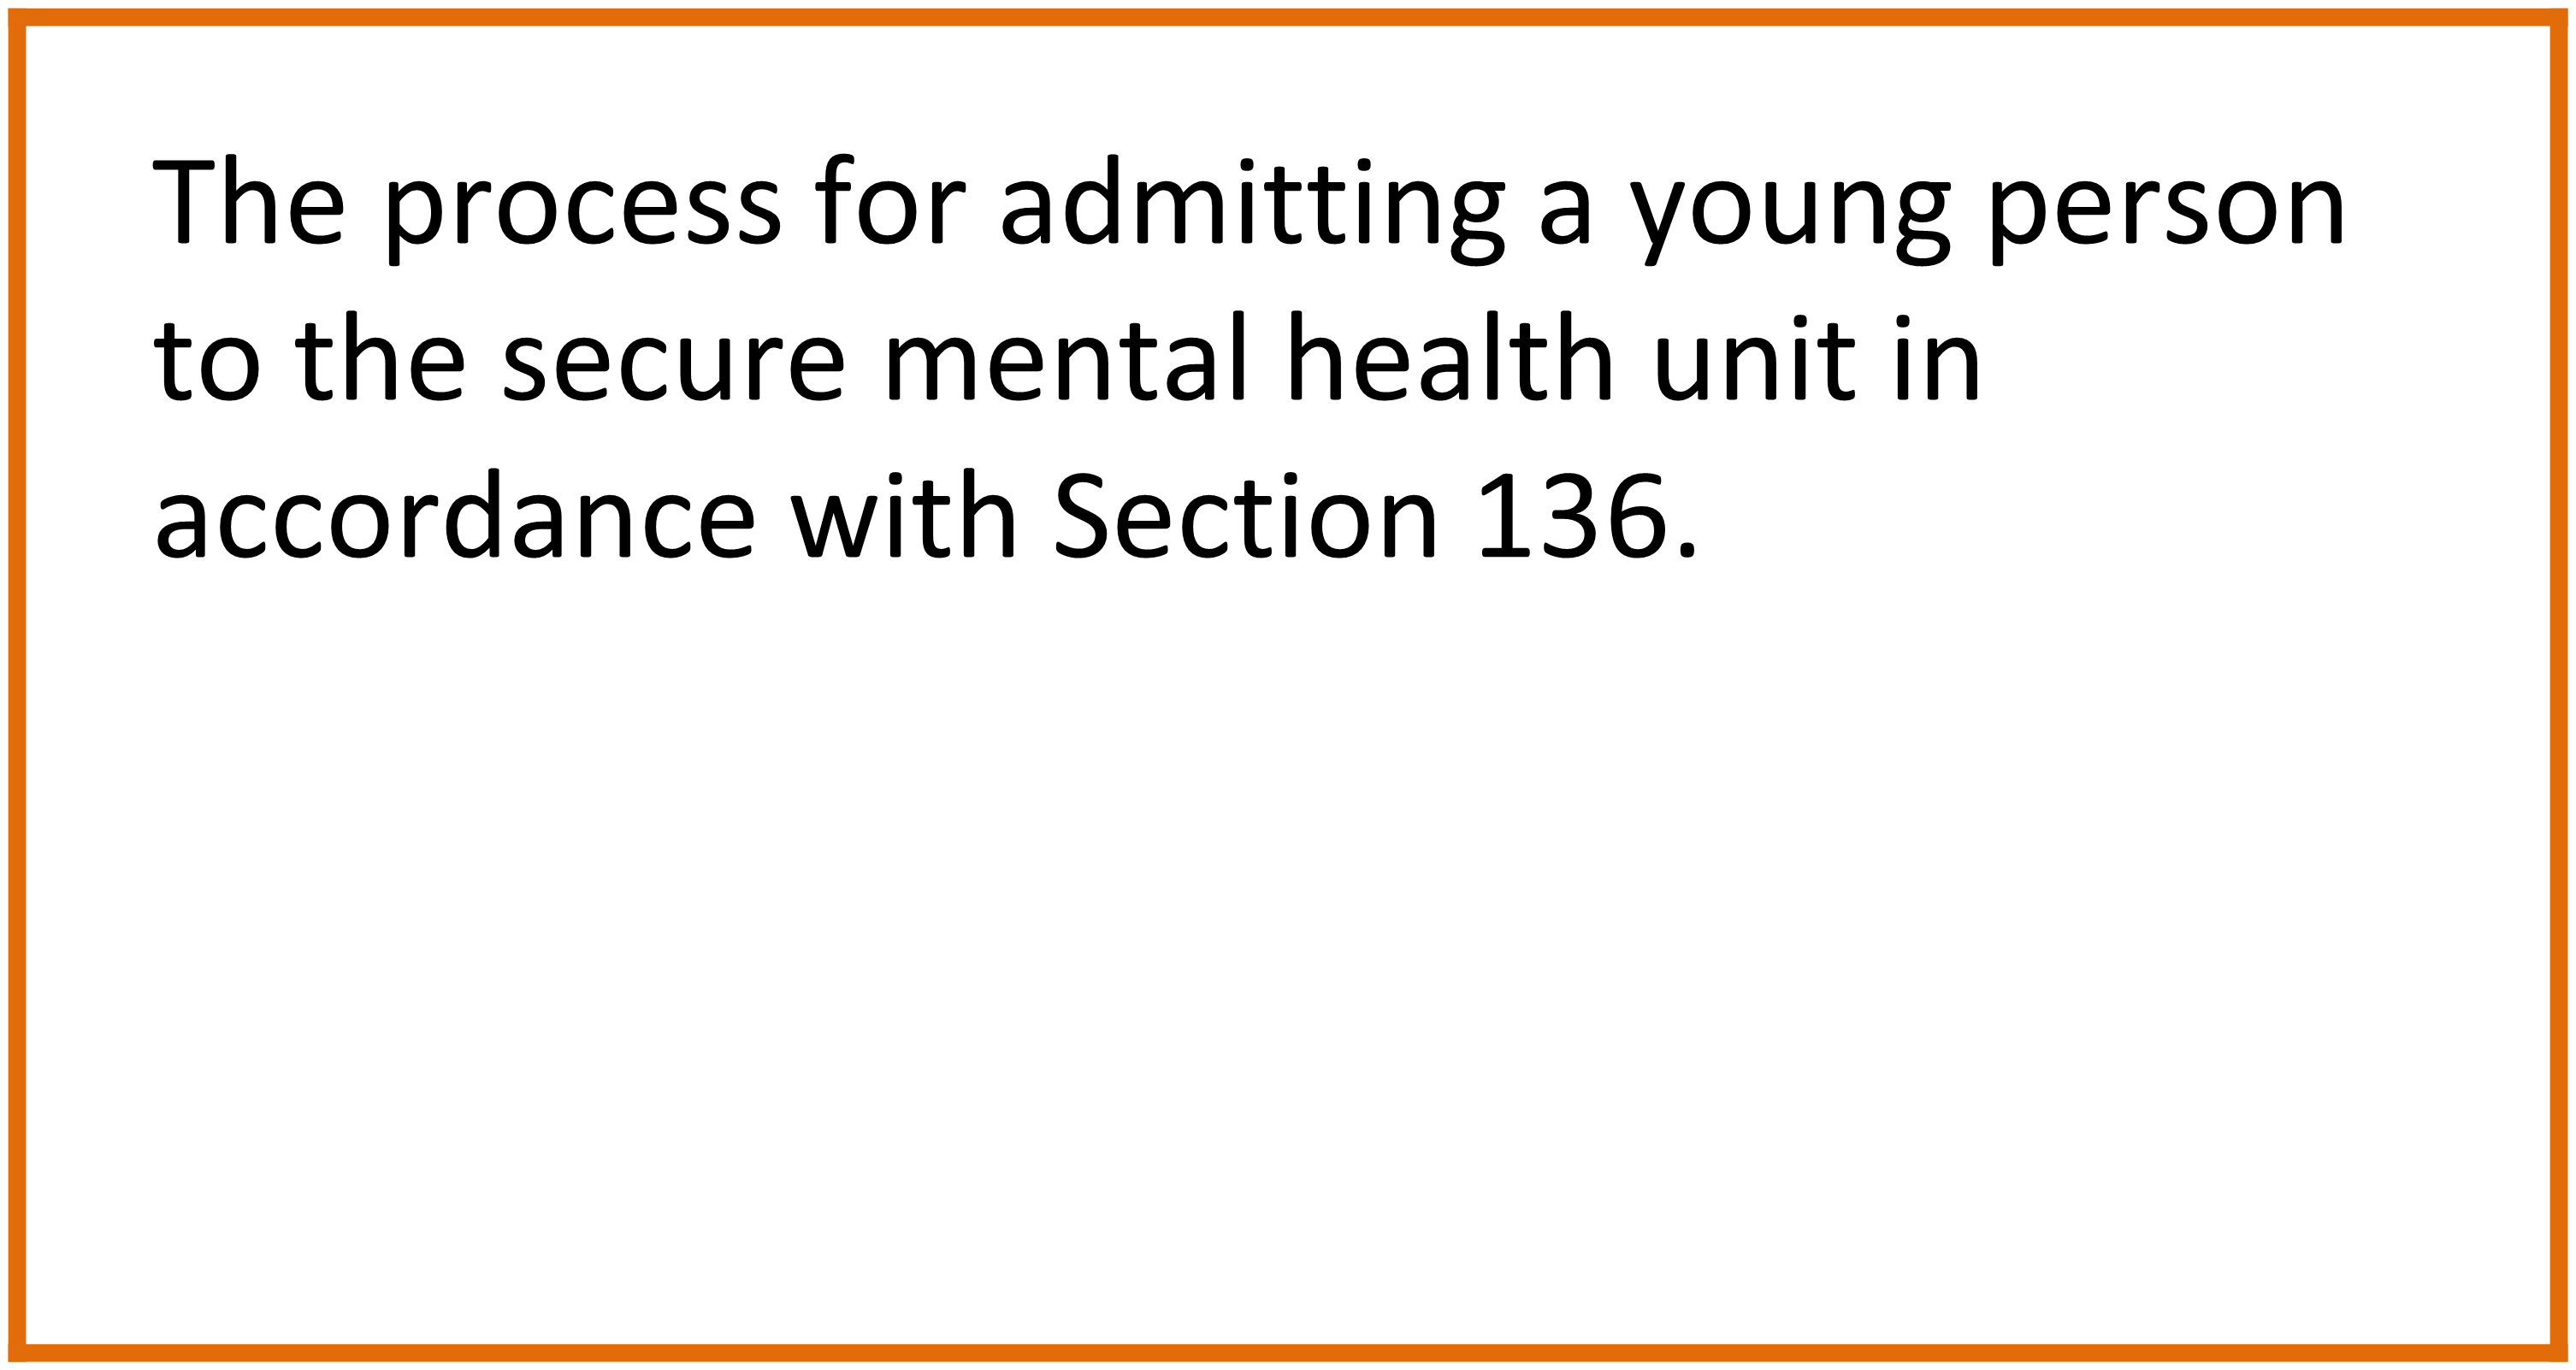 The example system description is: The process for admitting a young person to the secure mental health unit in accordance with Section 136.